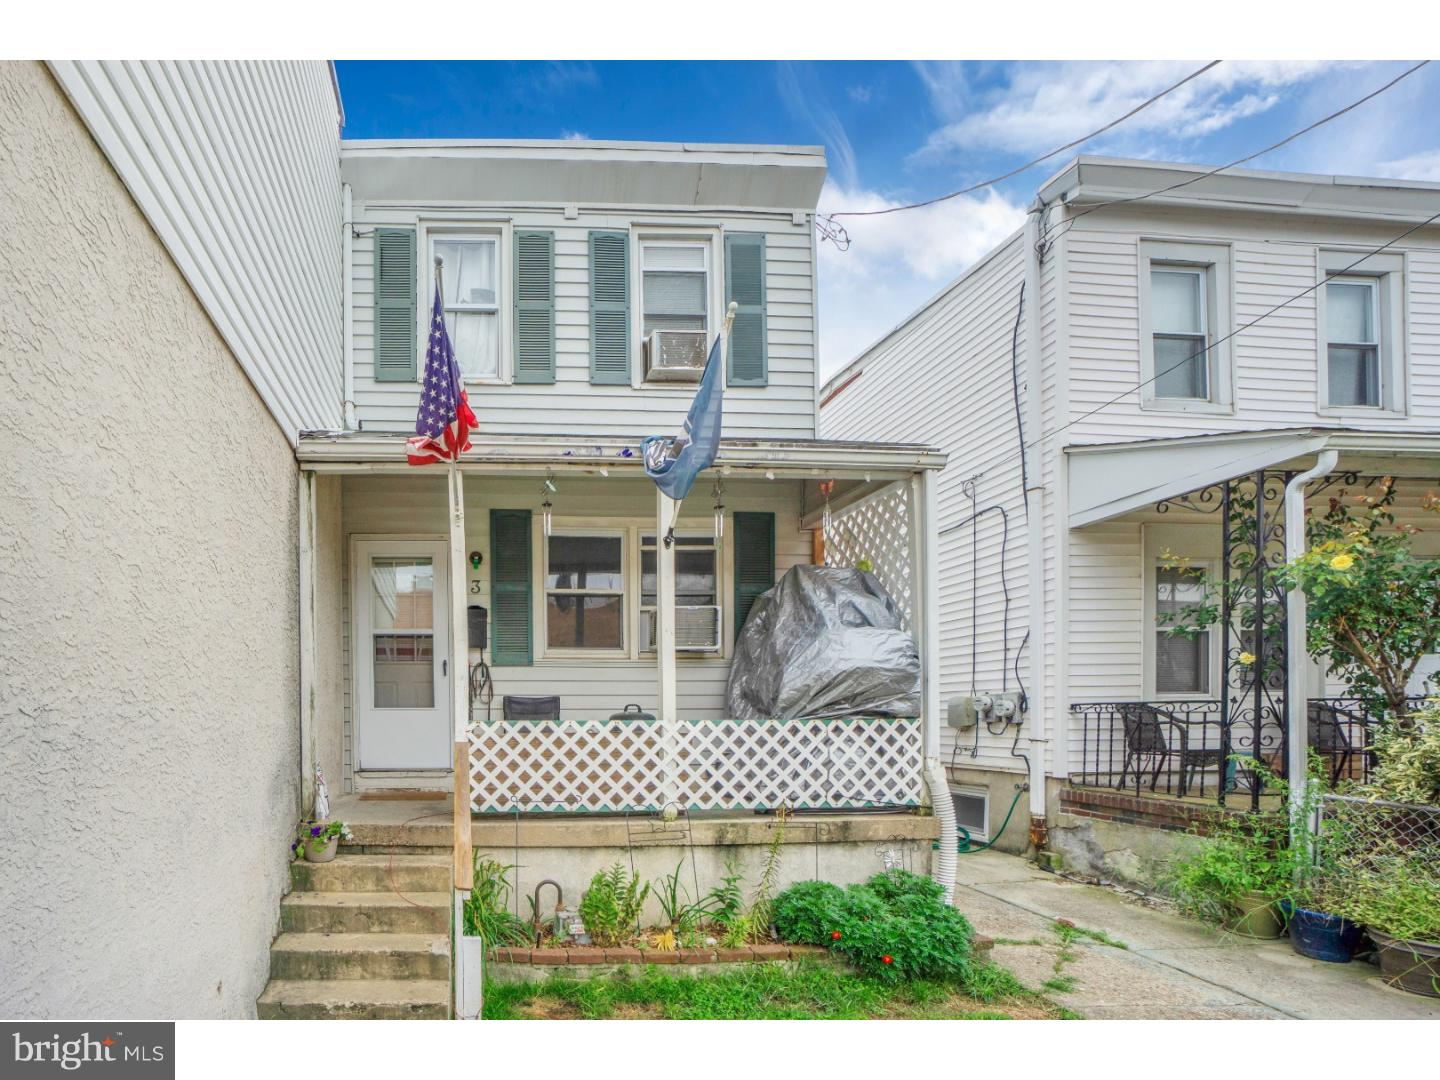 3 W 8TH STREET, MARCUS HOOK, PA 19061